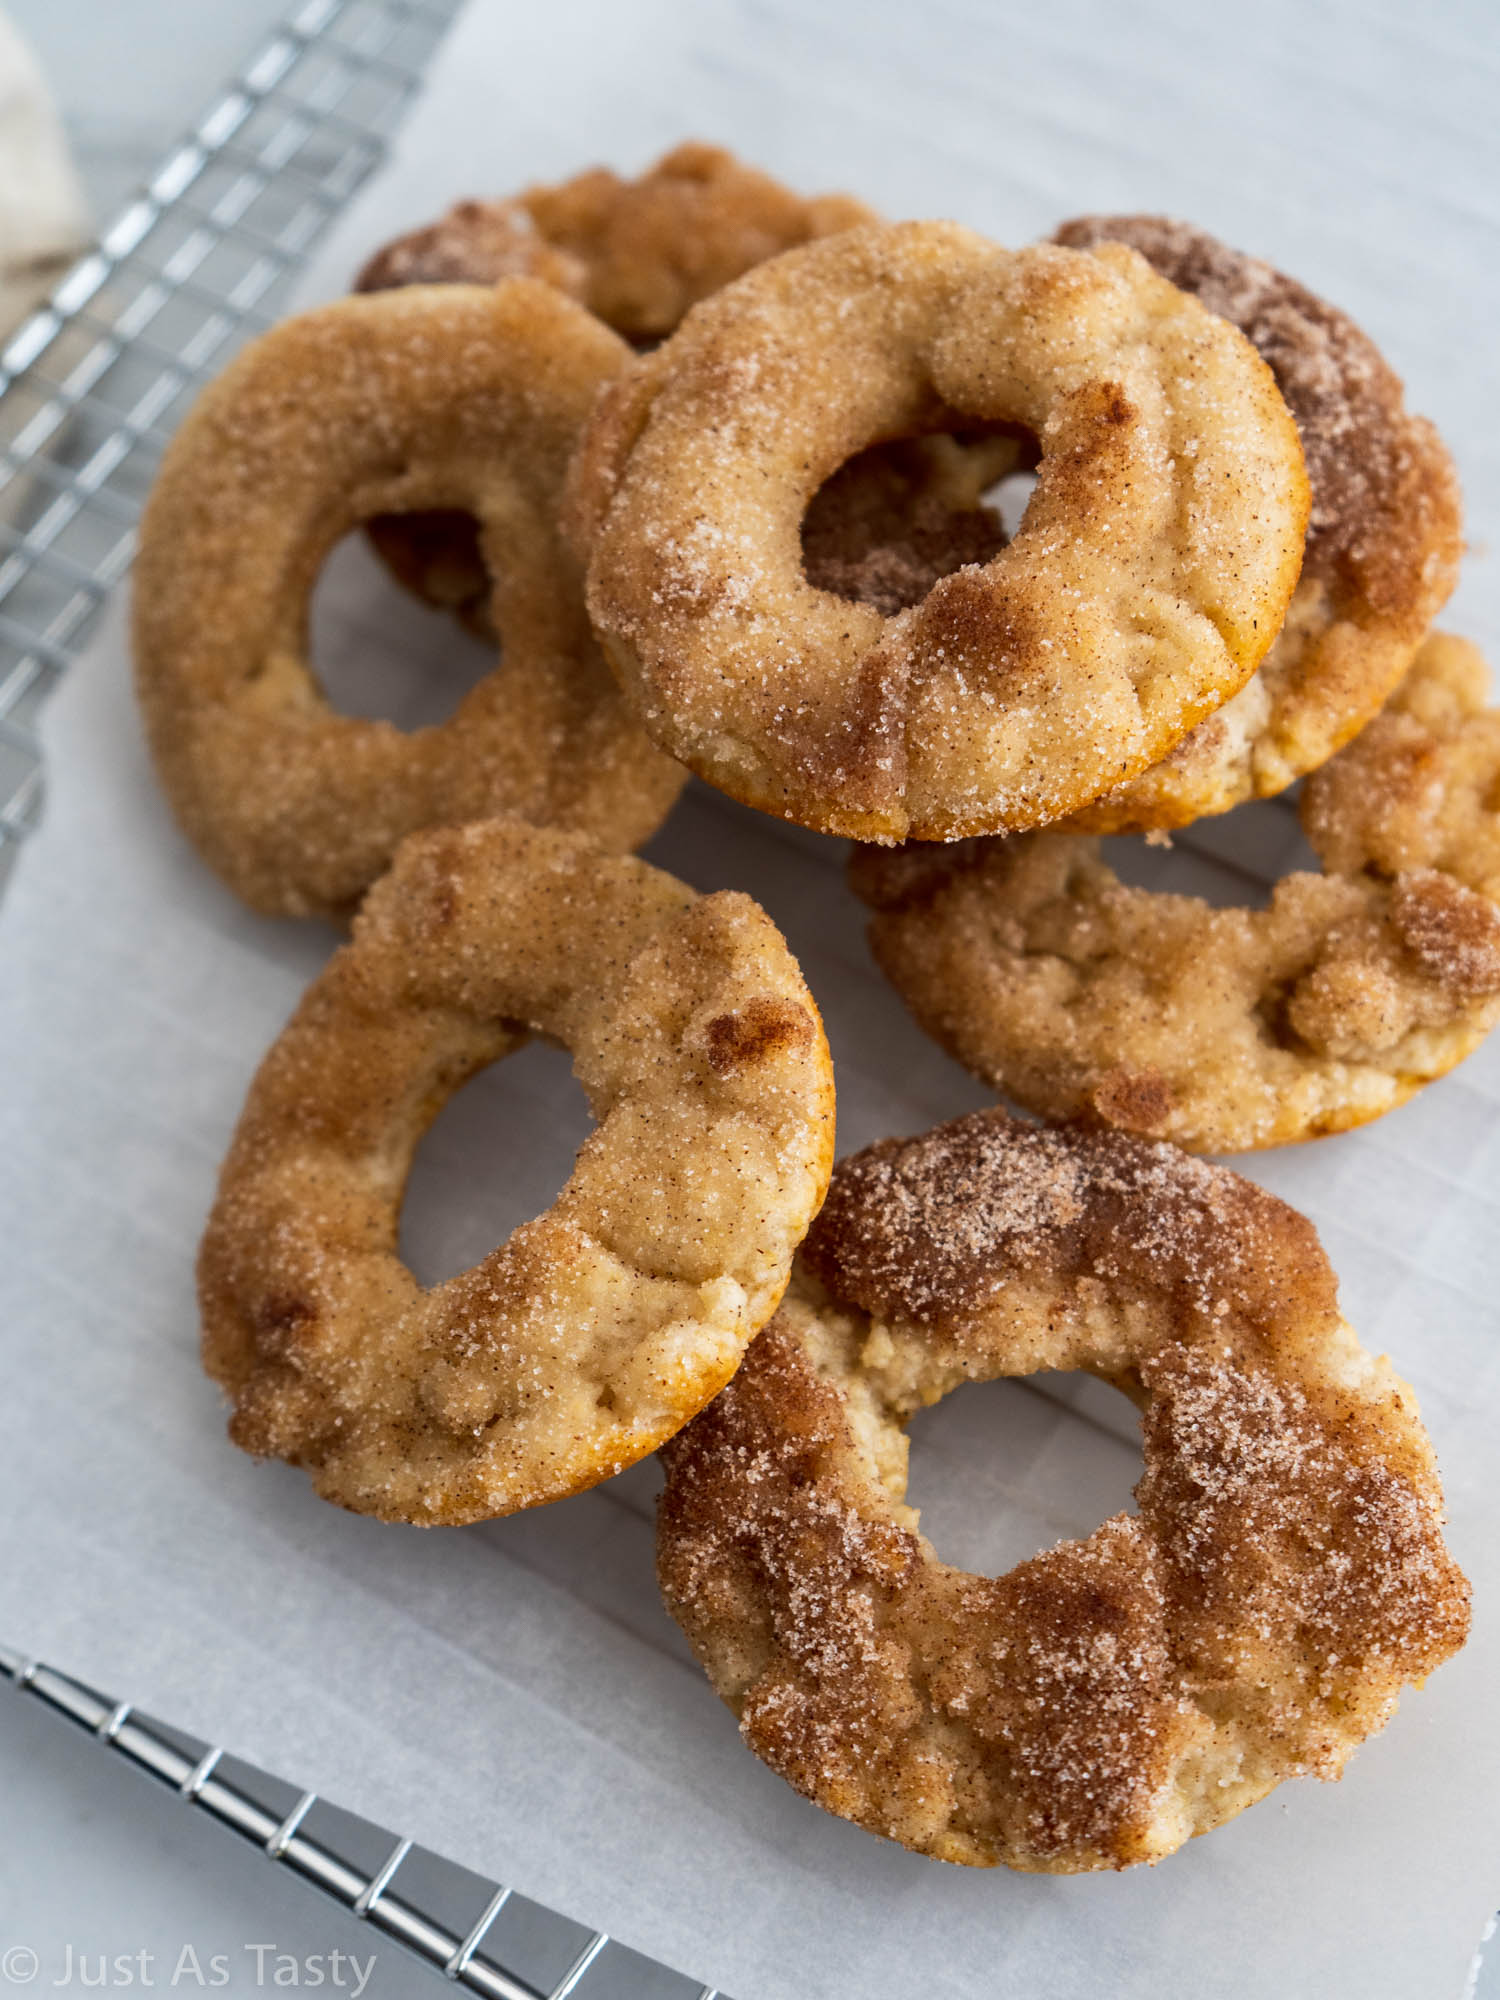 Baked donuts piled onto white parchment paper.